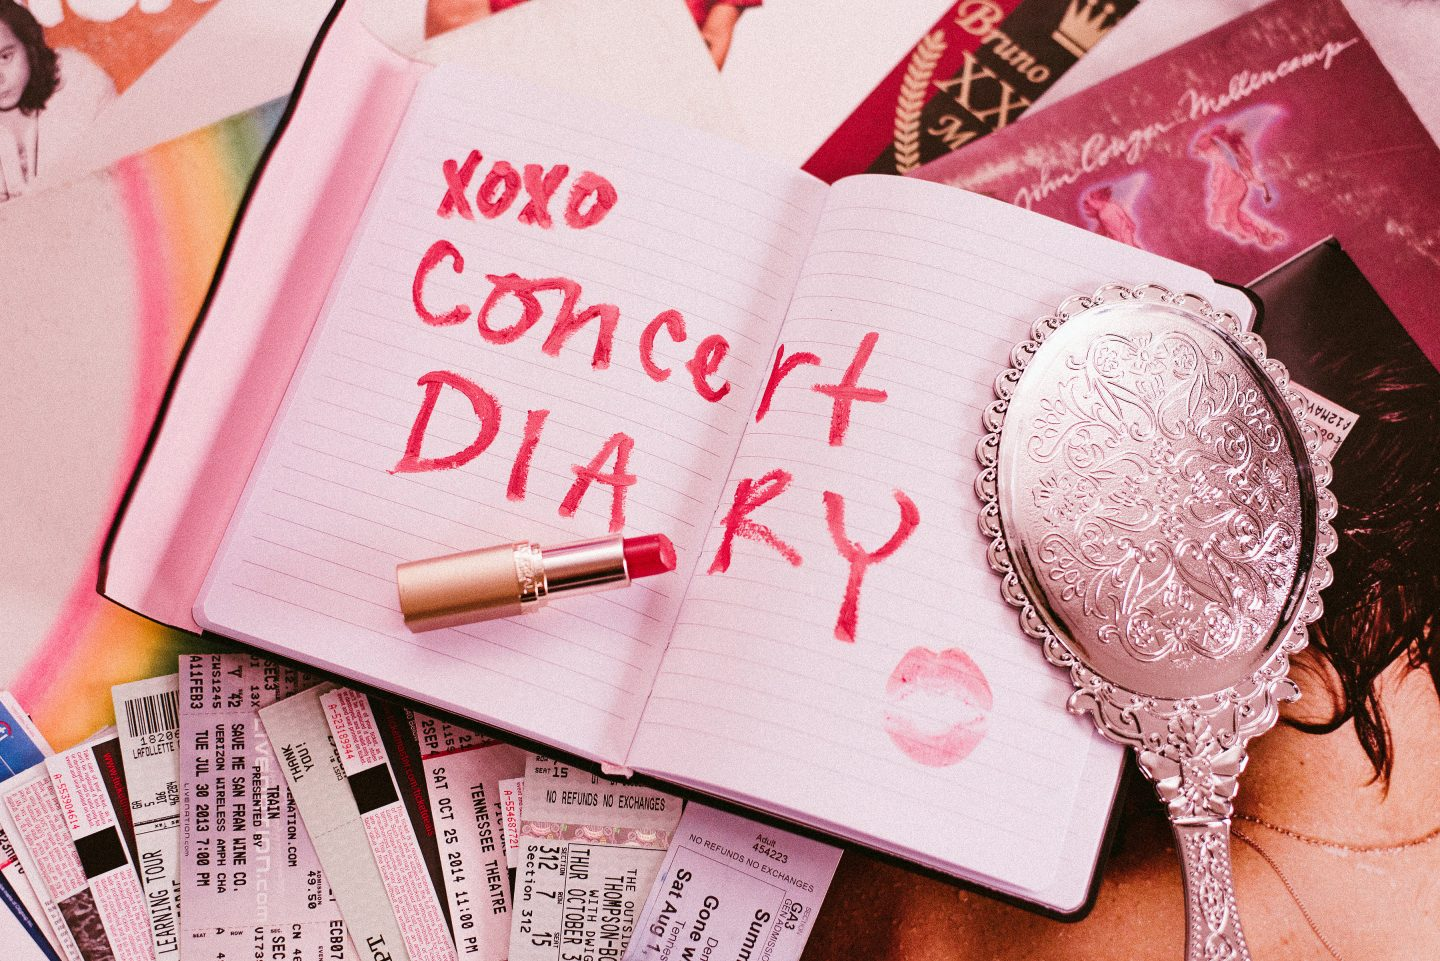 The Concert Diary